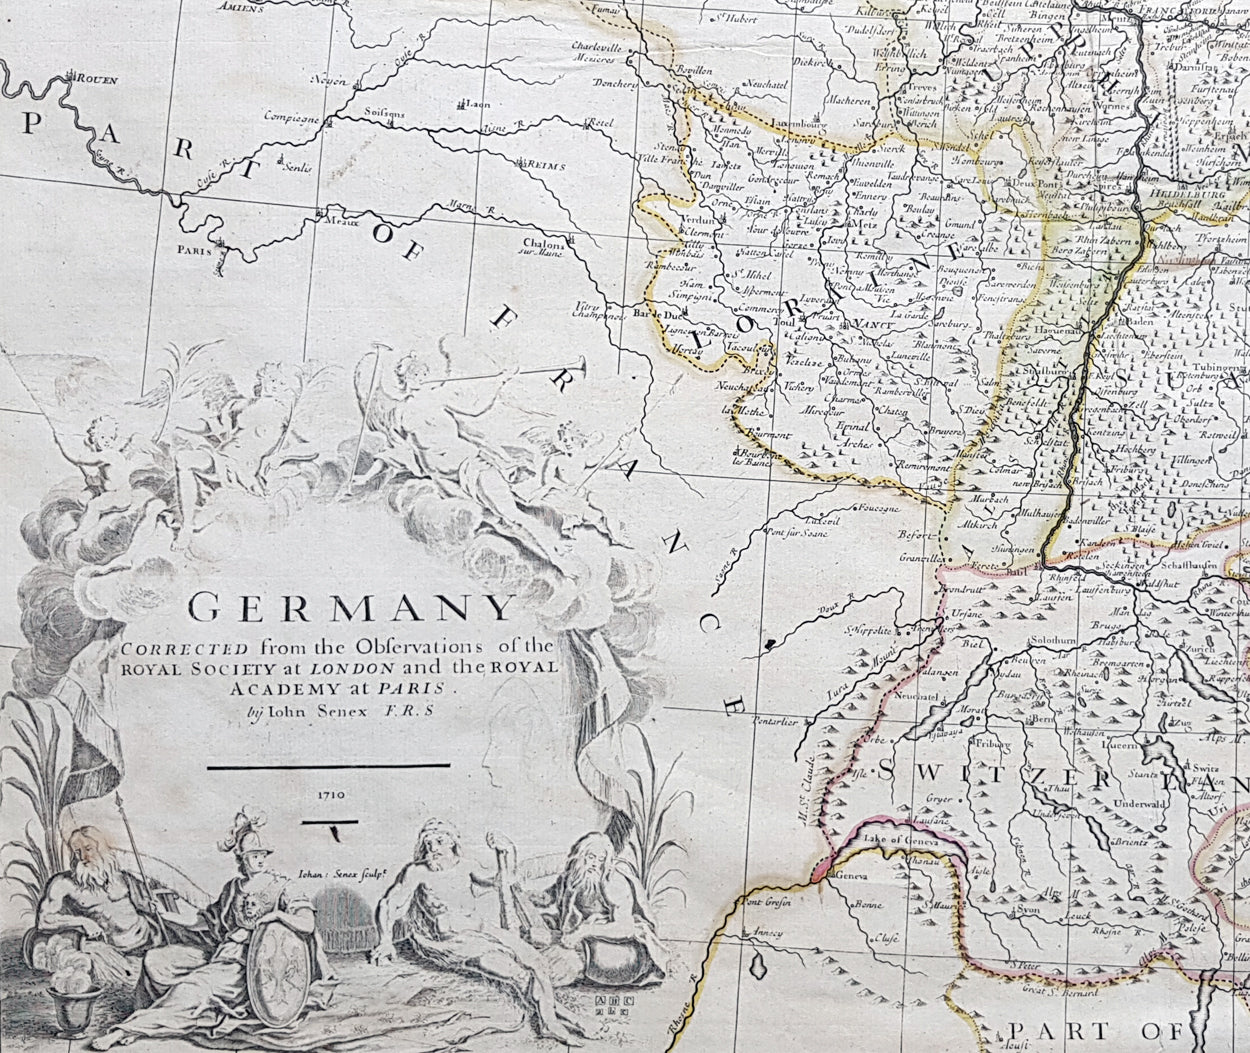 Map Of Germany Austria.1710 John Senex Large Antique Map Of Germany Central Europe Baltic To Austria